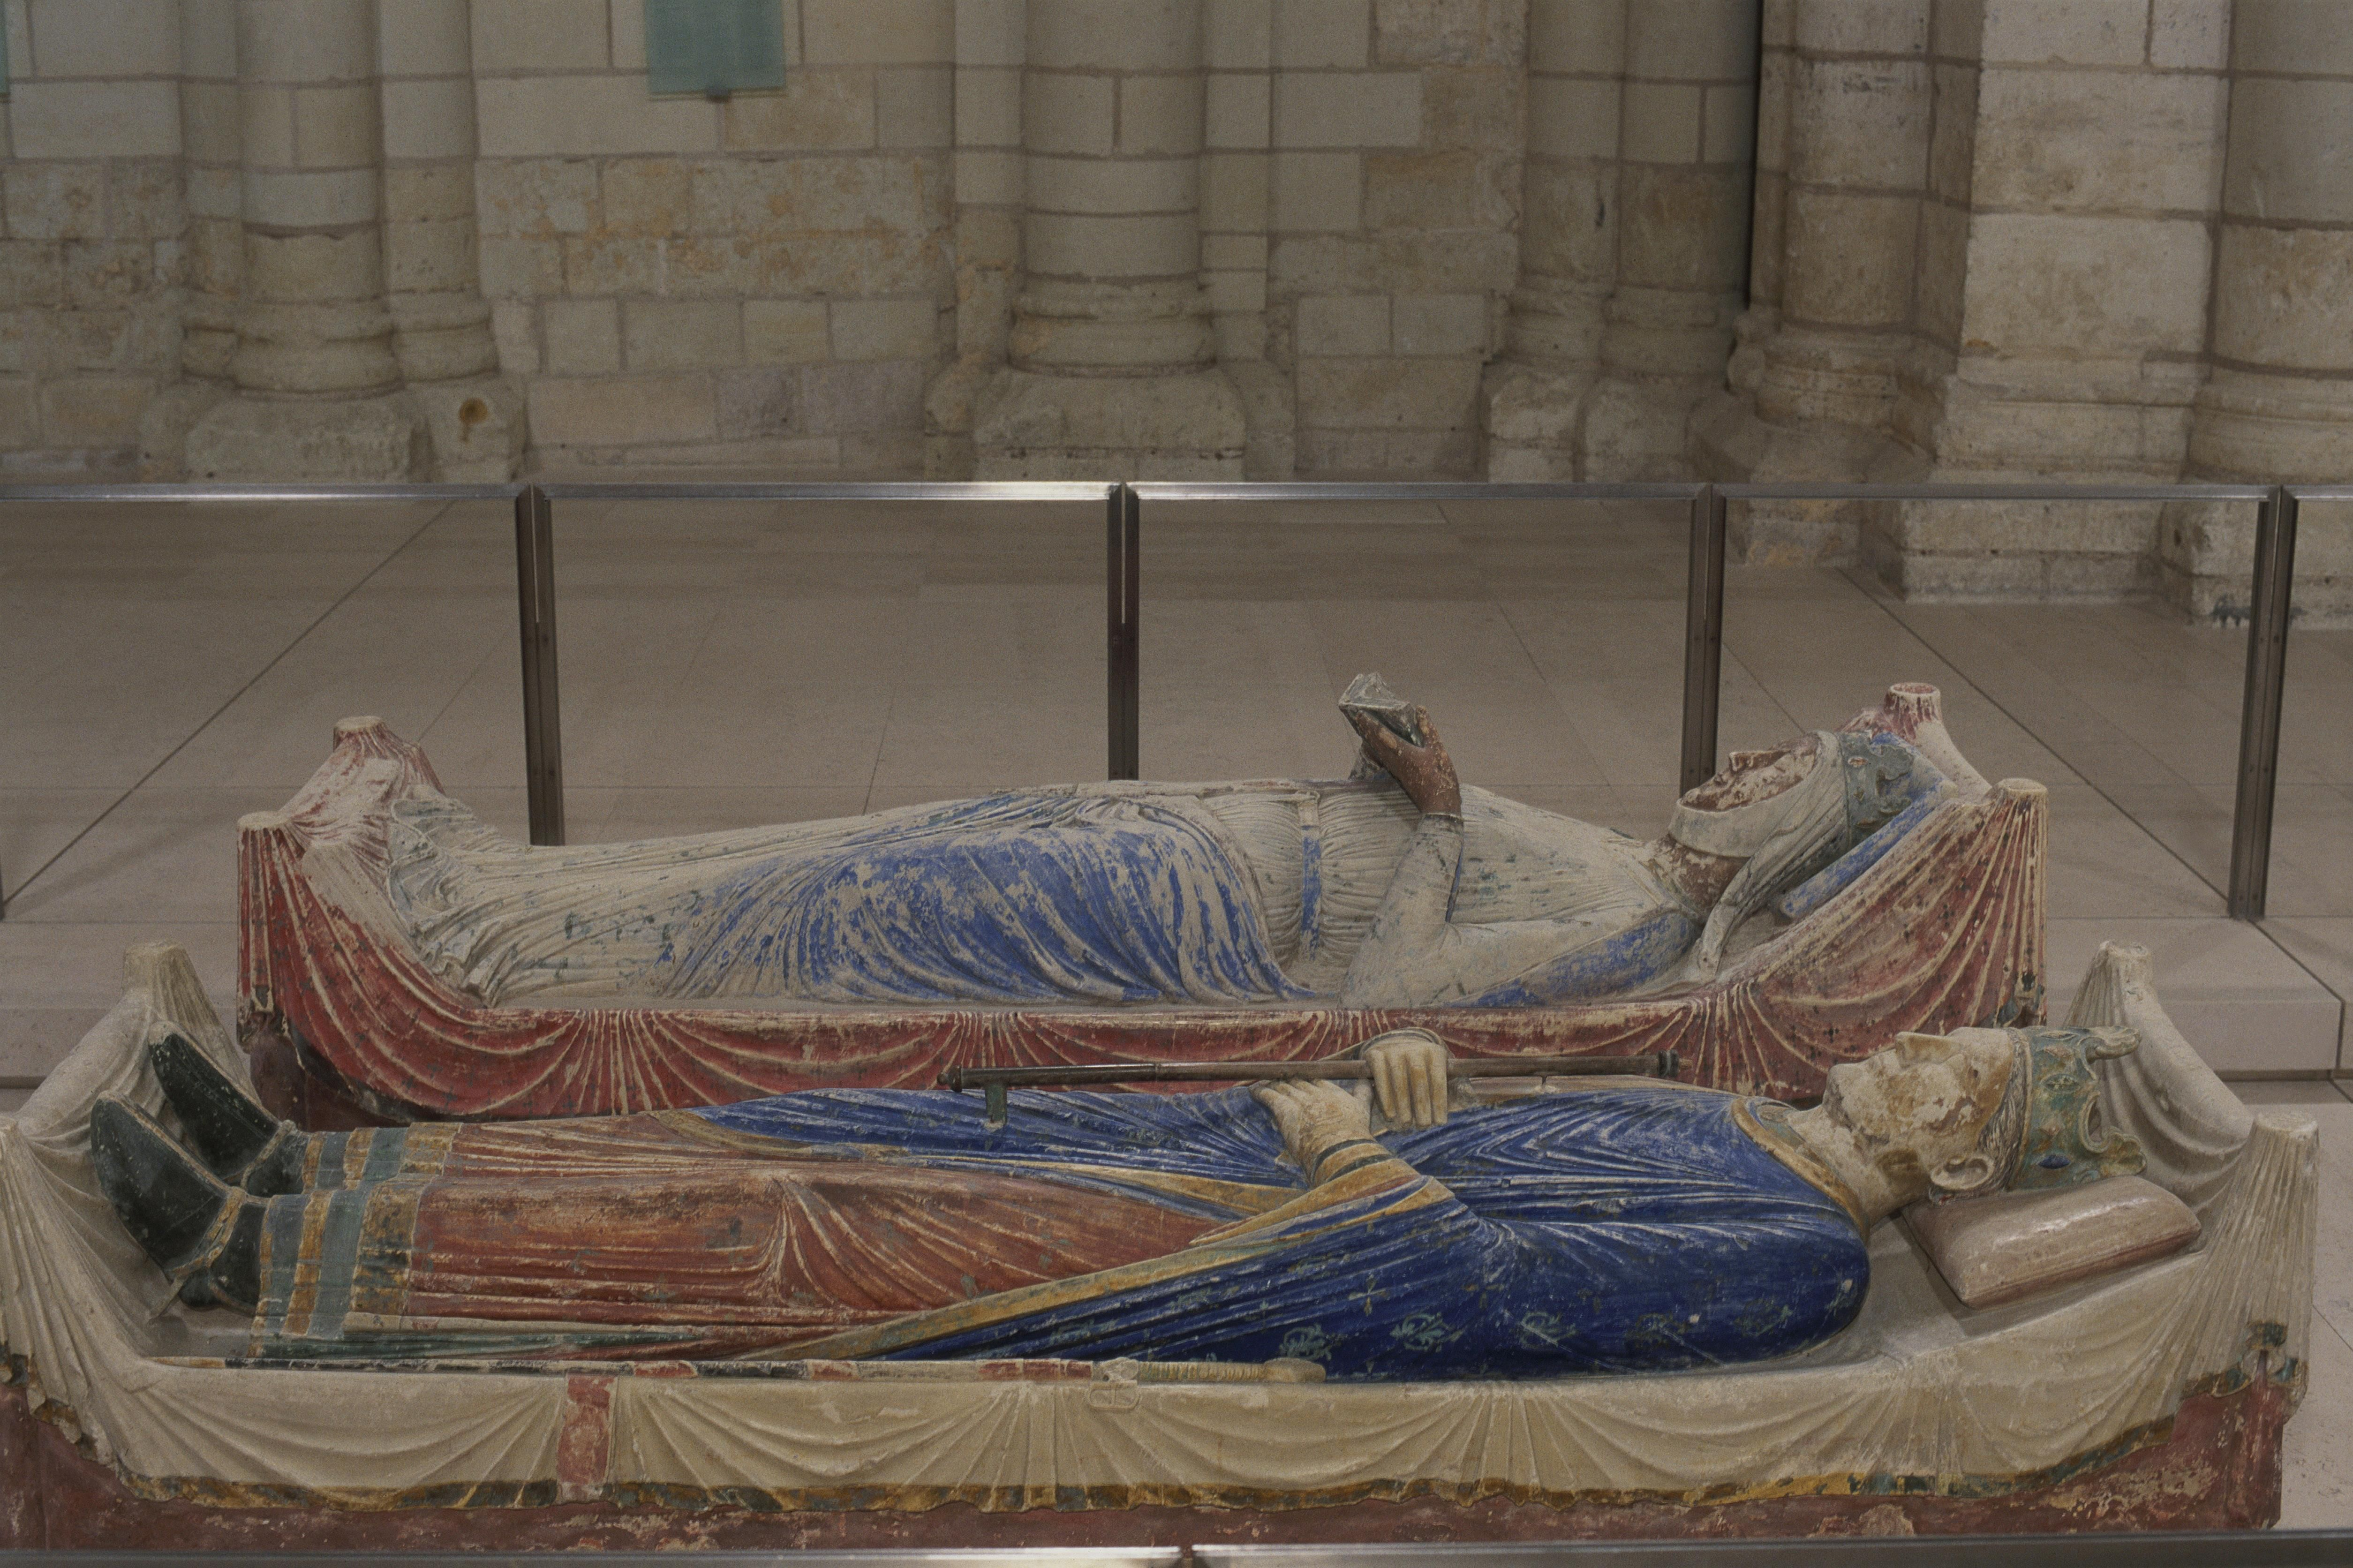 Eleanor of Aquitaine and Henry II, lying together: tombs at Fontevraud-l'Abbaye